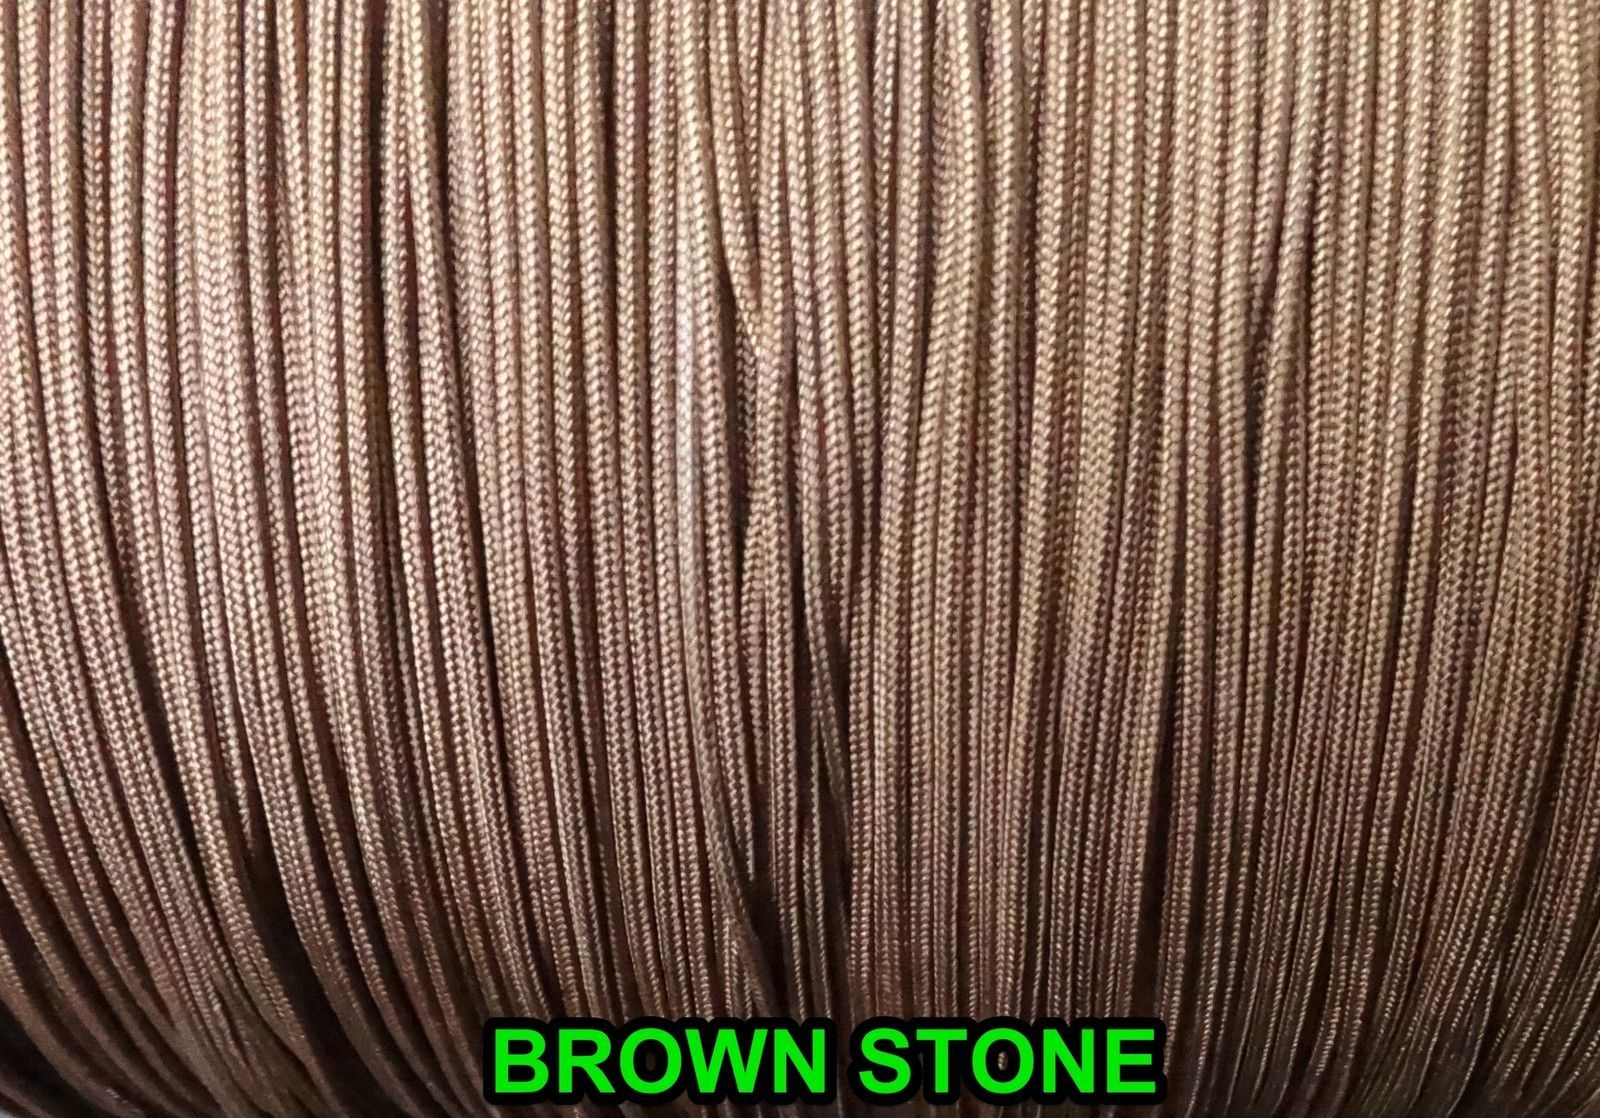 40 FEET:1.8mm BROWNSTONE LIFT CORD for ROMAN/PLEATED shades &HORIZONTAL blind